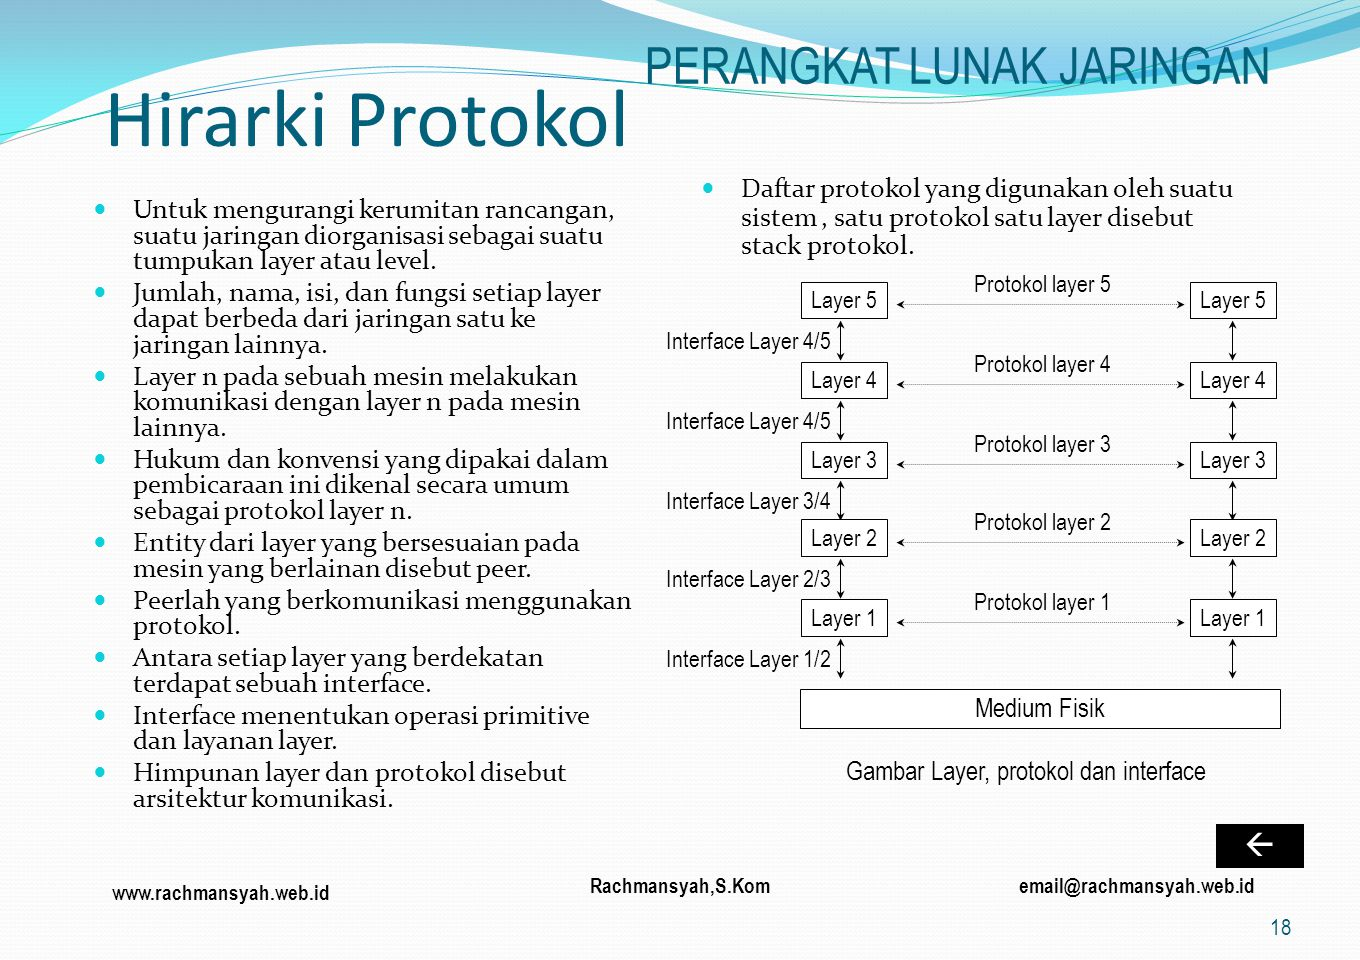 Gambar Layer, protokol dan interface